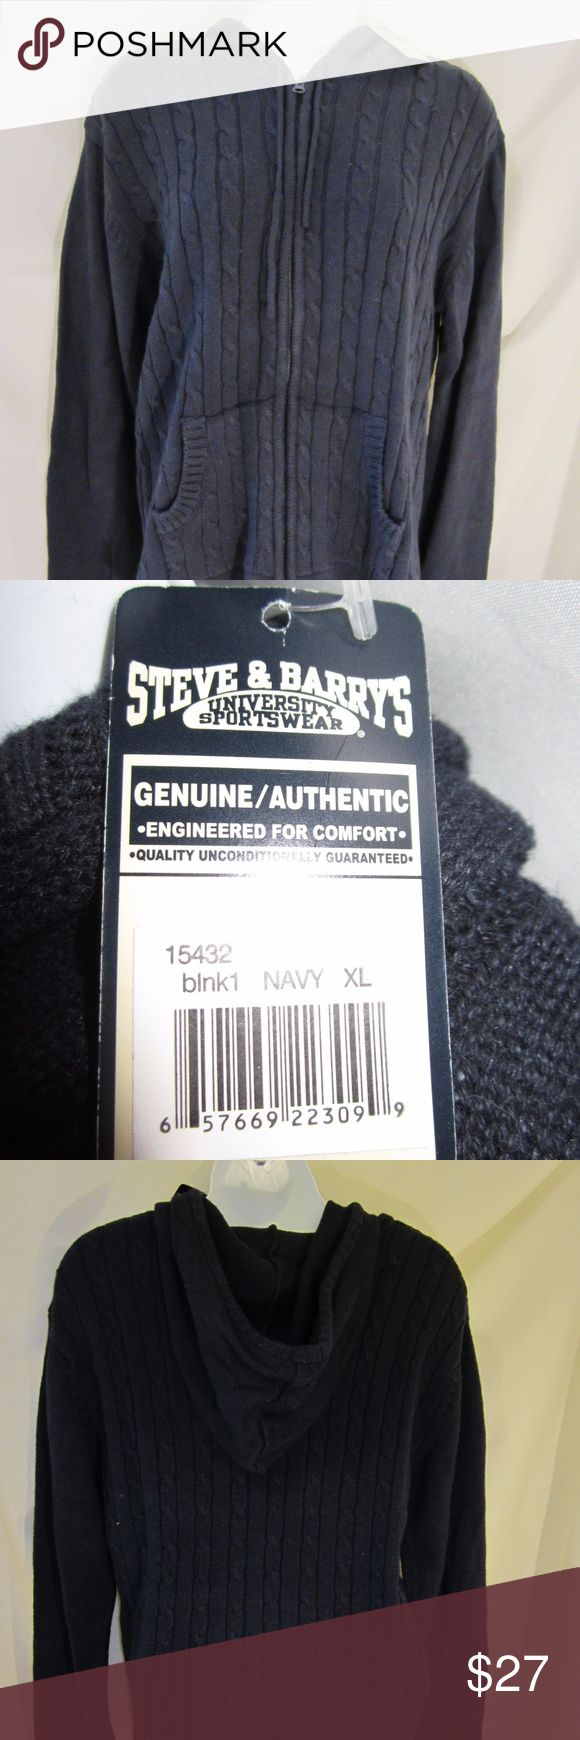 NWT Jr. Steve & Barry's Front Zip Hooded Sweater New w/Tags!!! Steve & Barry's University Sportswear.  Classic cable knit. Front zipper w/hoodie.  Navy blue color. Juniors's size XL but fits like a LARGE!!! Non-smoking home.  P4  I only offer clean, undamaged merchandise as stated in the description. Shipments are generally mailed within 48 hours of receipt of payment. Feedback is always given to my customers.   Thank you for looking. You won't be disappointed.  And remember to have a…